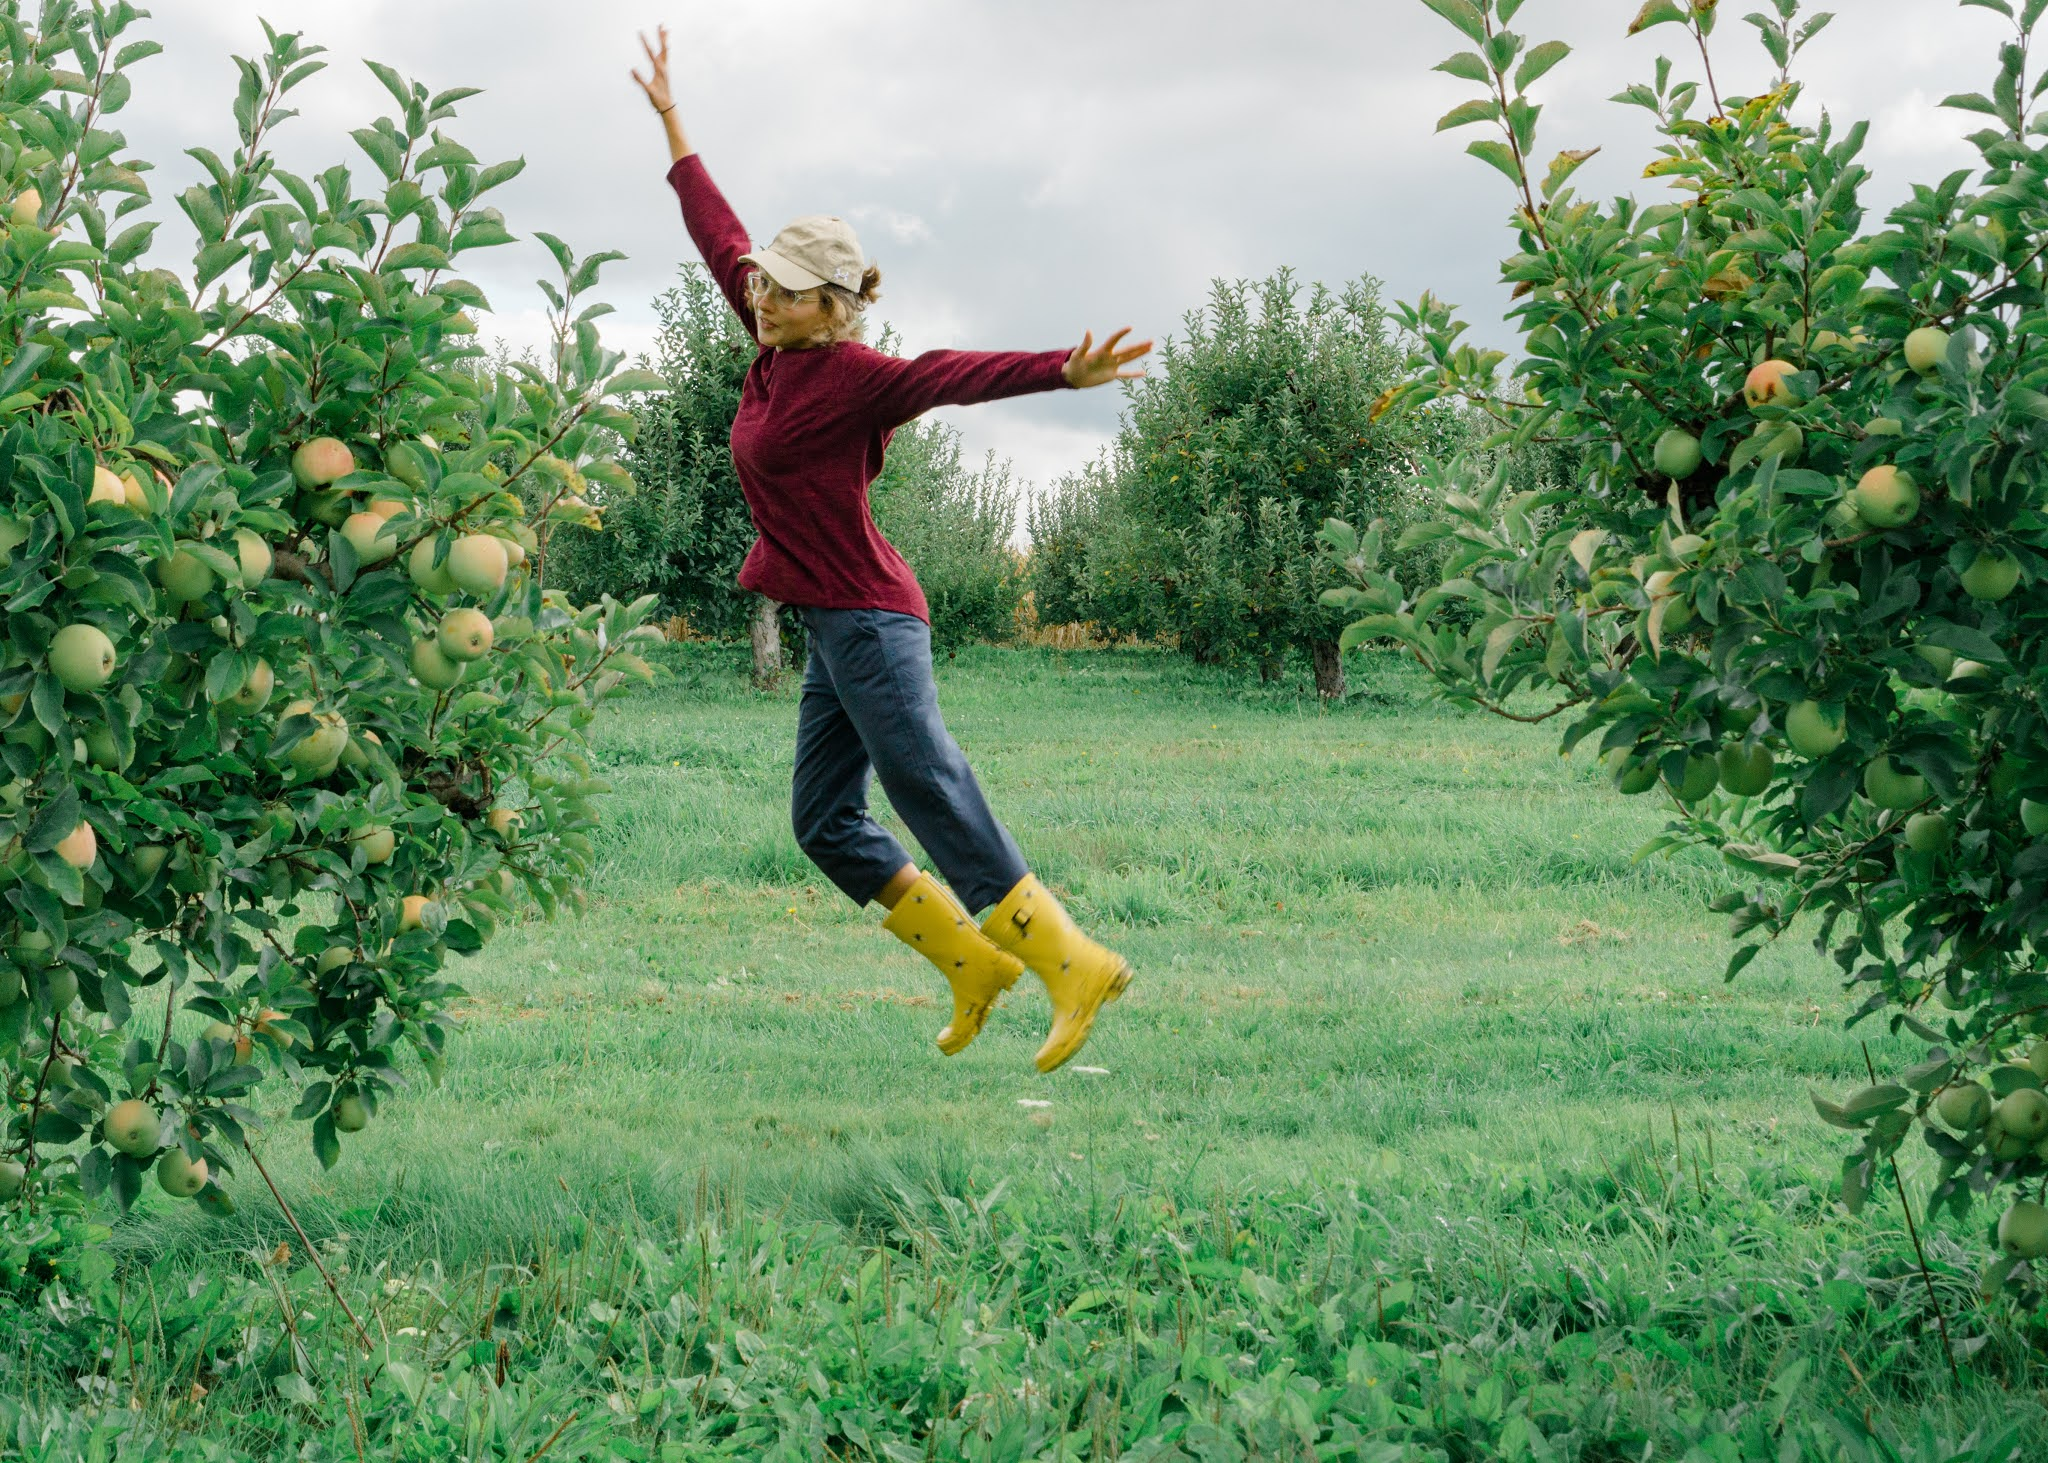 The best practices when apple picking